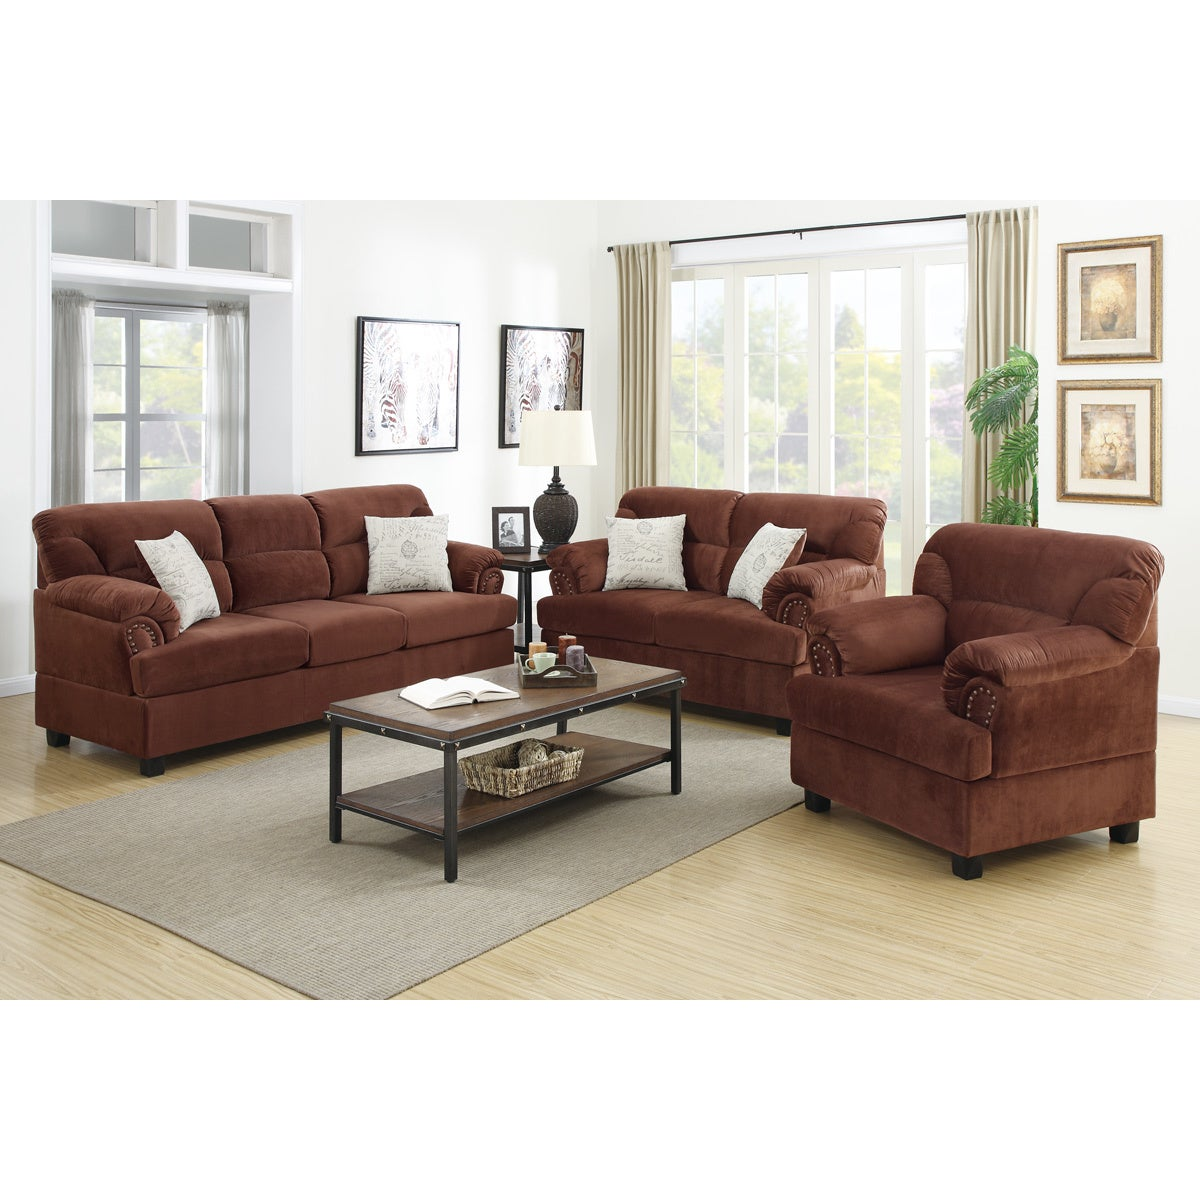 Junik 3 piece living room set in microfiber overstock for 8 piece living room furniture